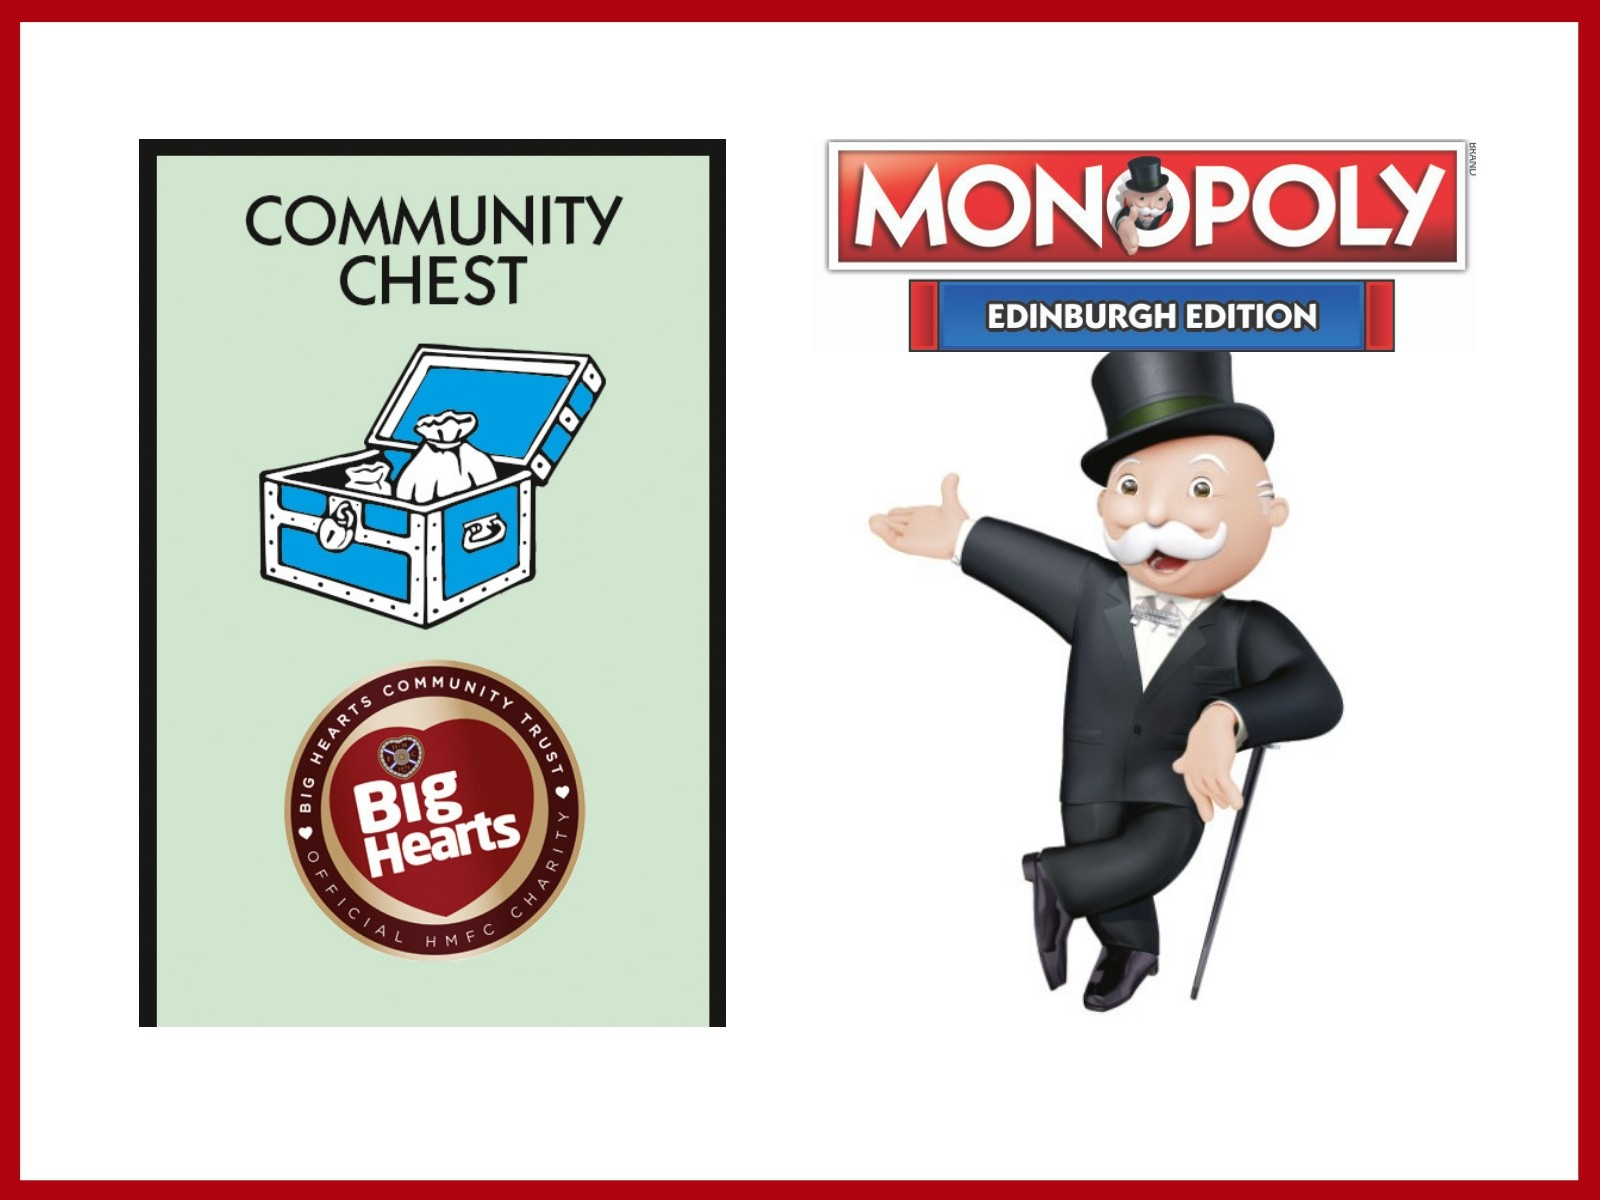 » Big Hearts to feature in the new Edinburgh Monopoly!